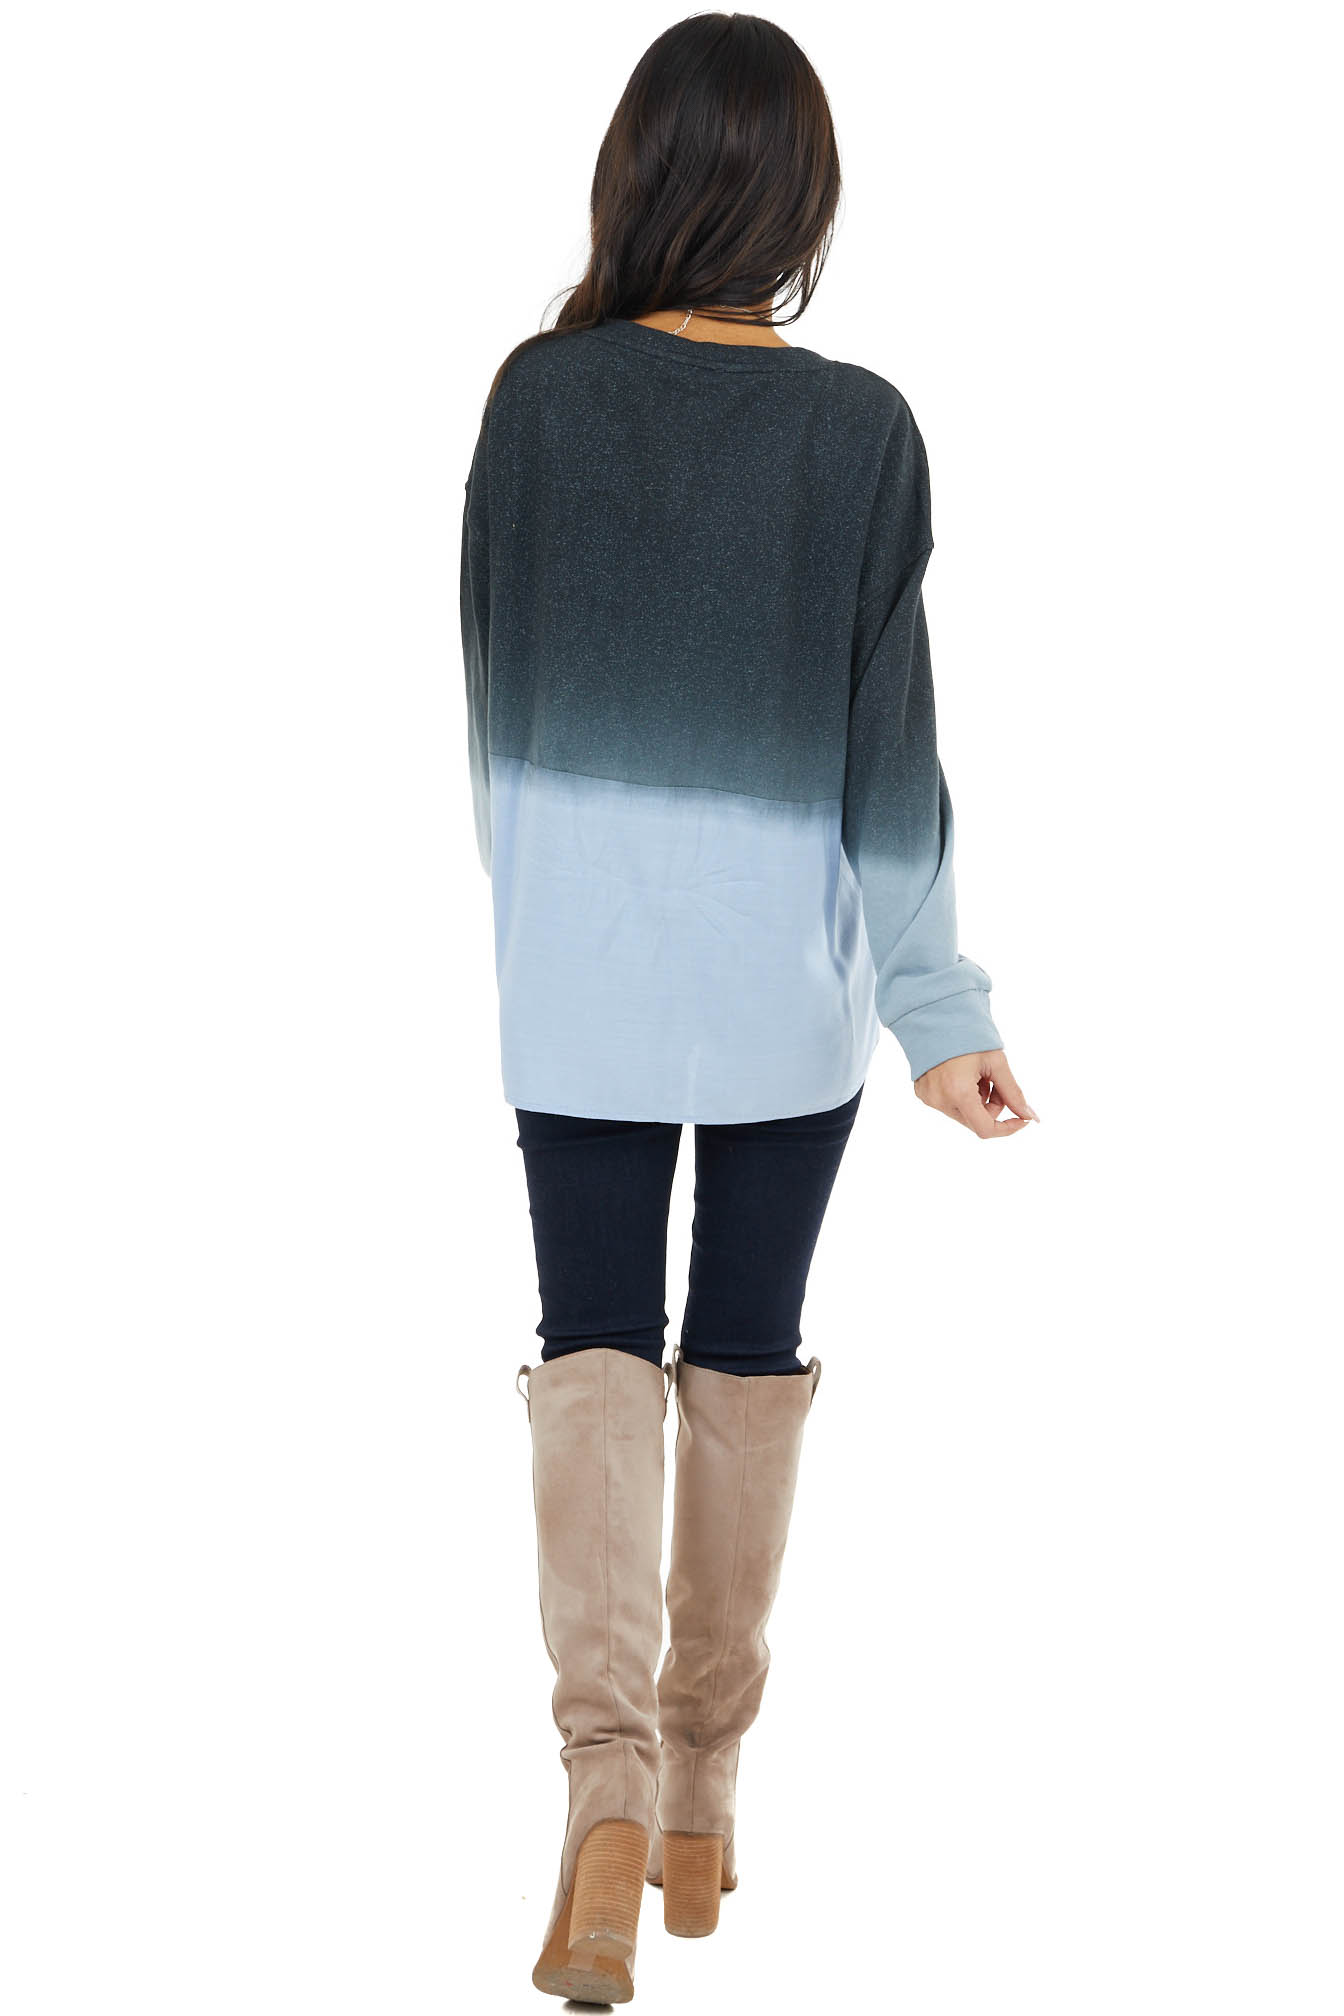 Ash Blue Speckled Ombre Long Sleeve Top with Contrast Back